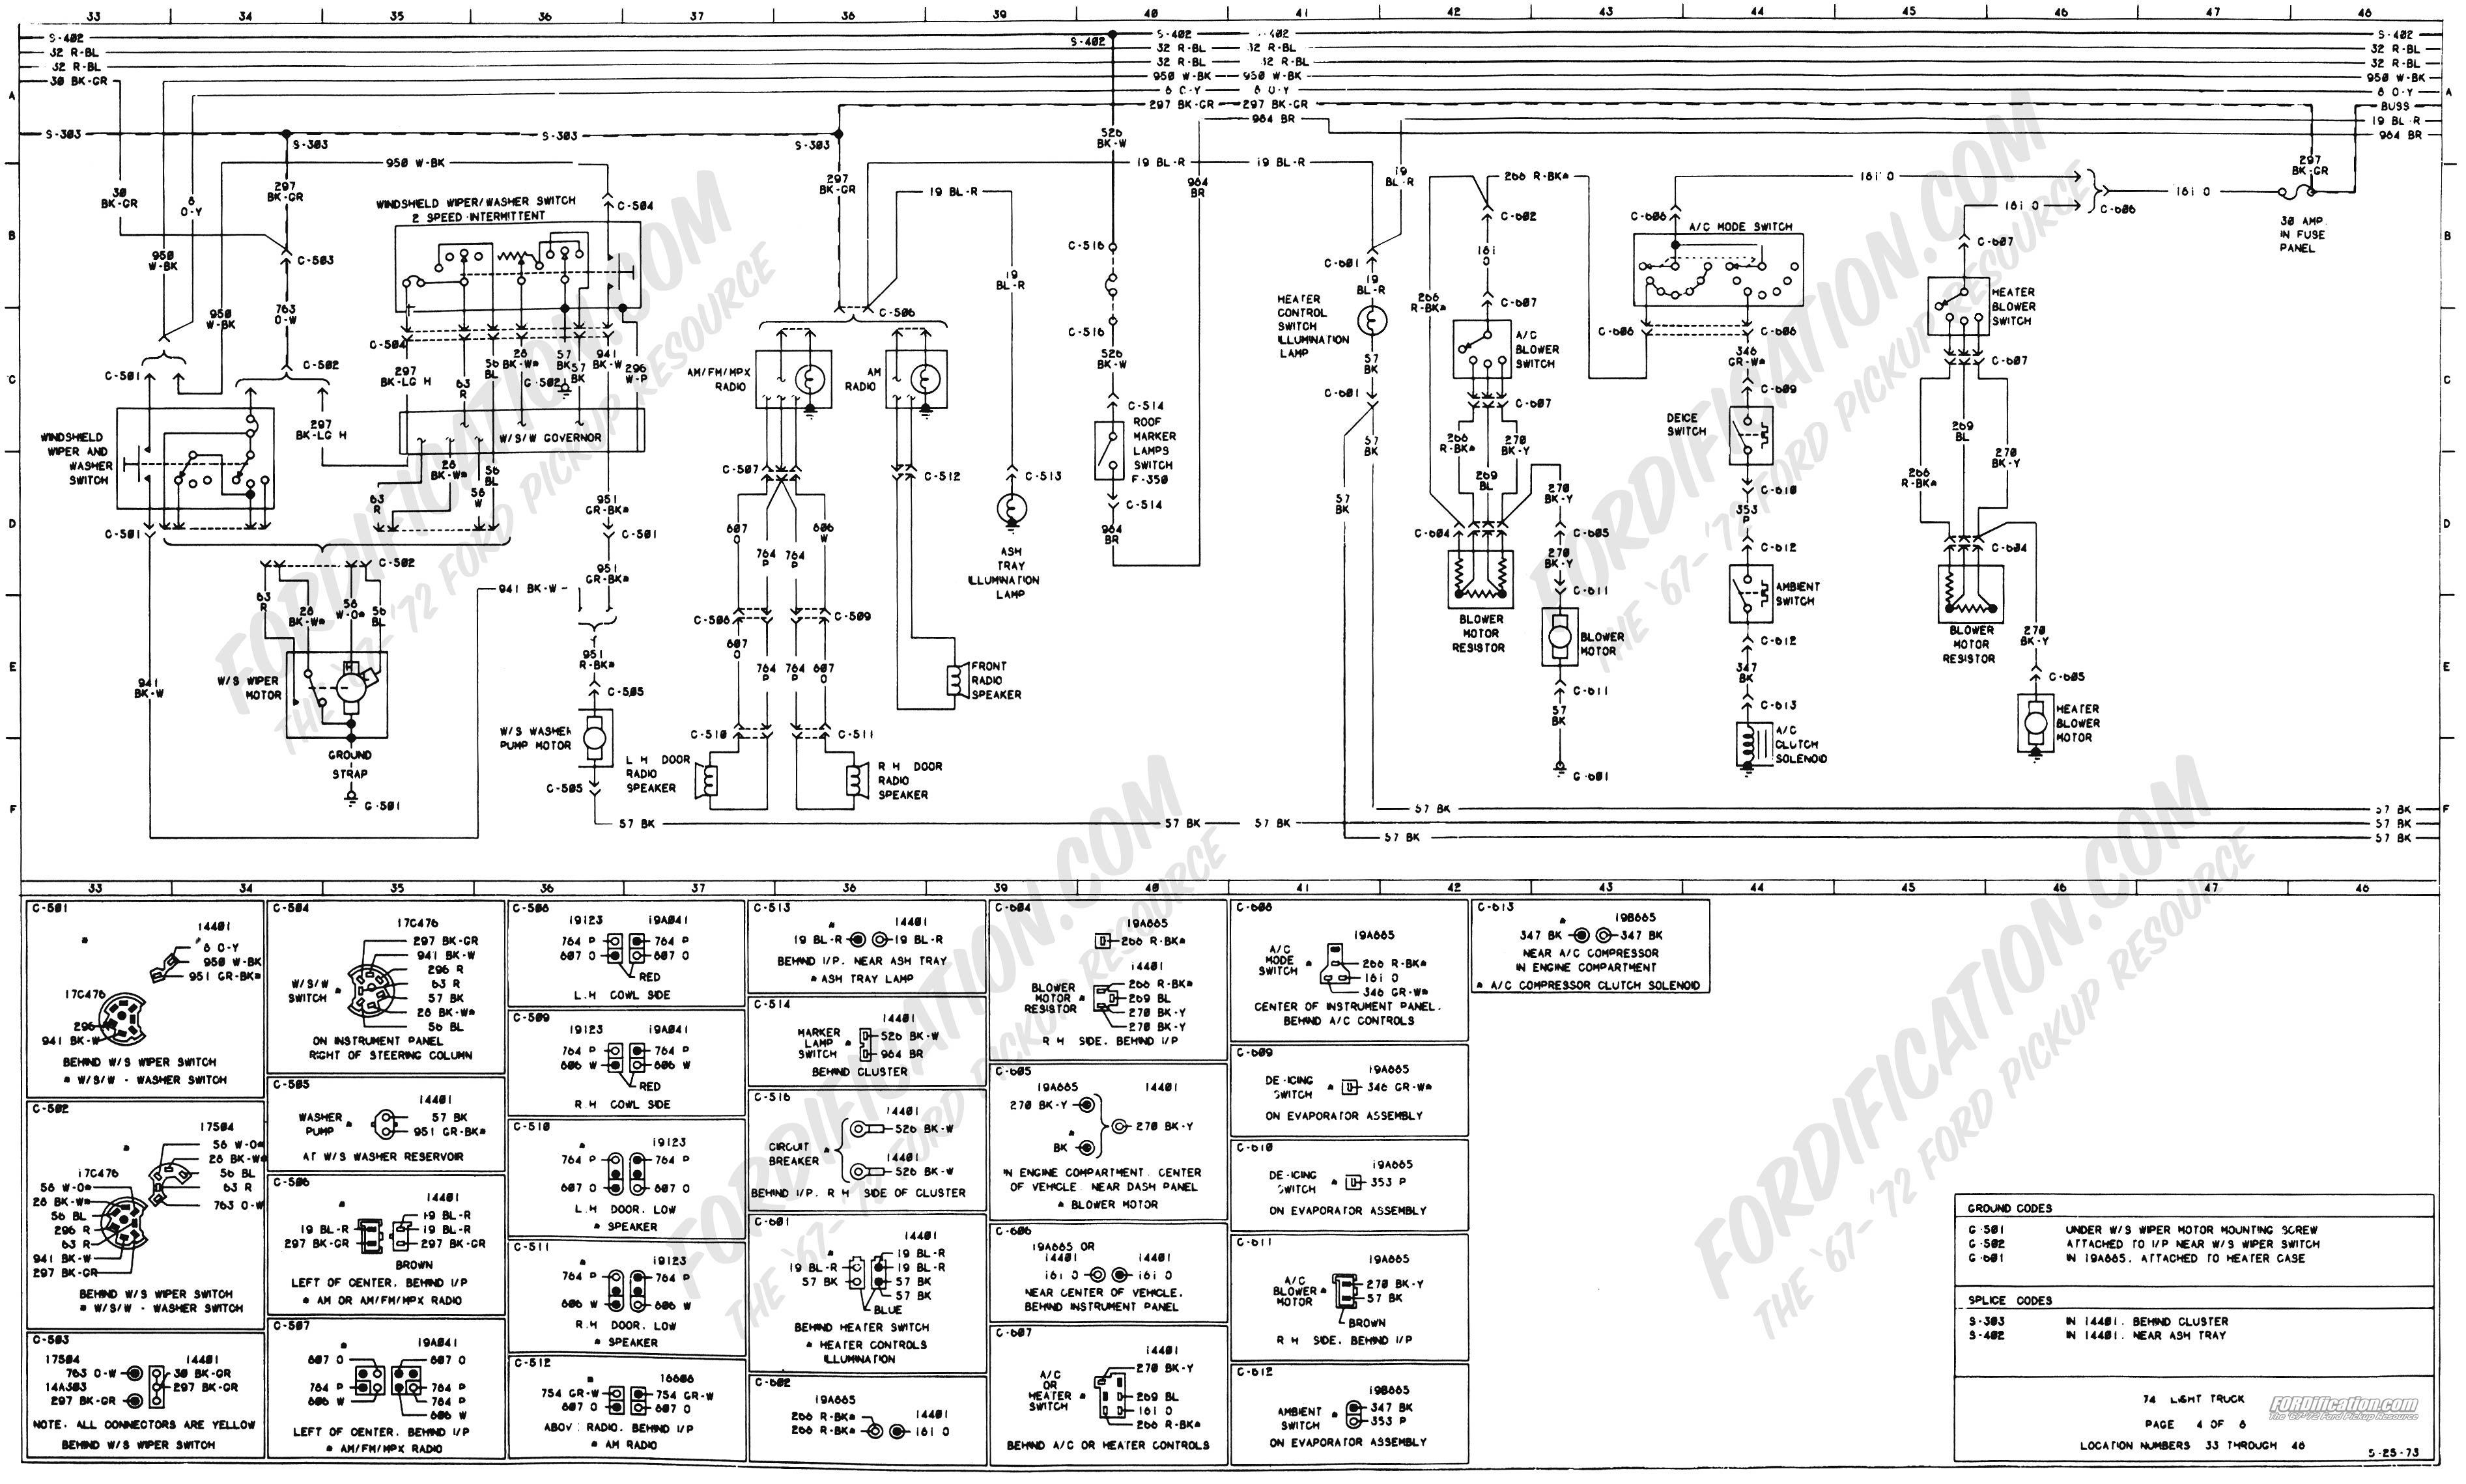 2013 F 150 Windshield Wiper Wiring Diagram Guide And Marine Master Switch Ford F650 Wipers Todays Rh 3 13 1813weddingbarn Com Motor